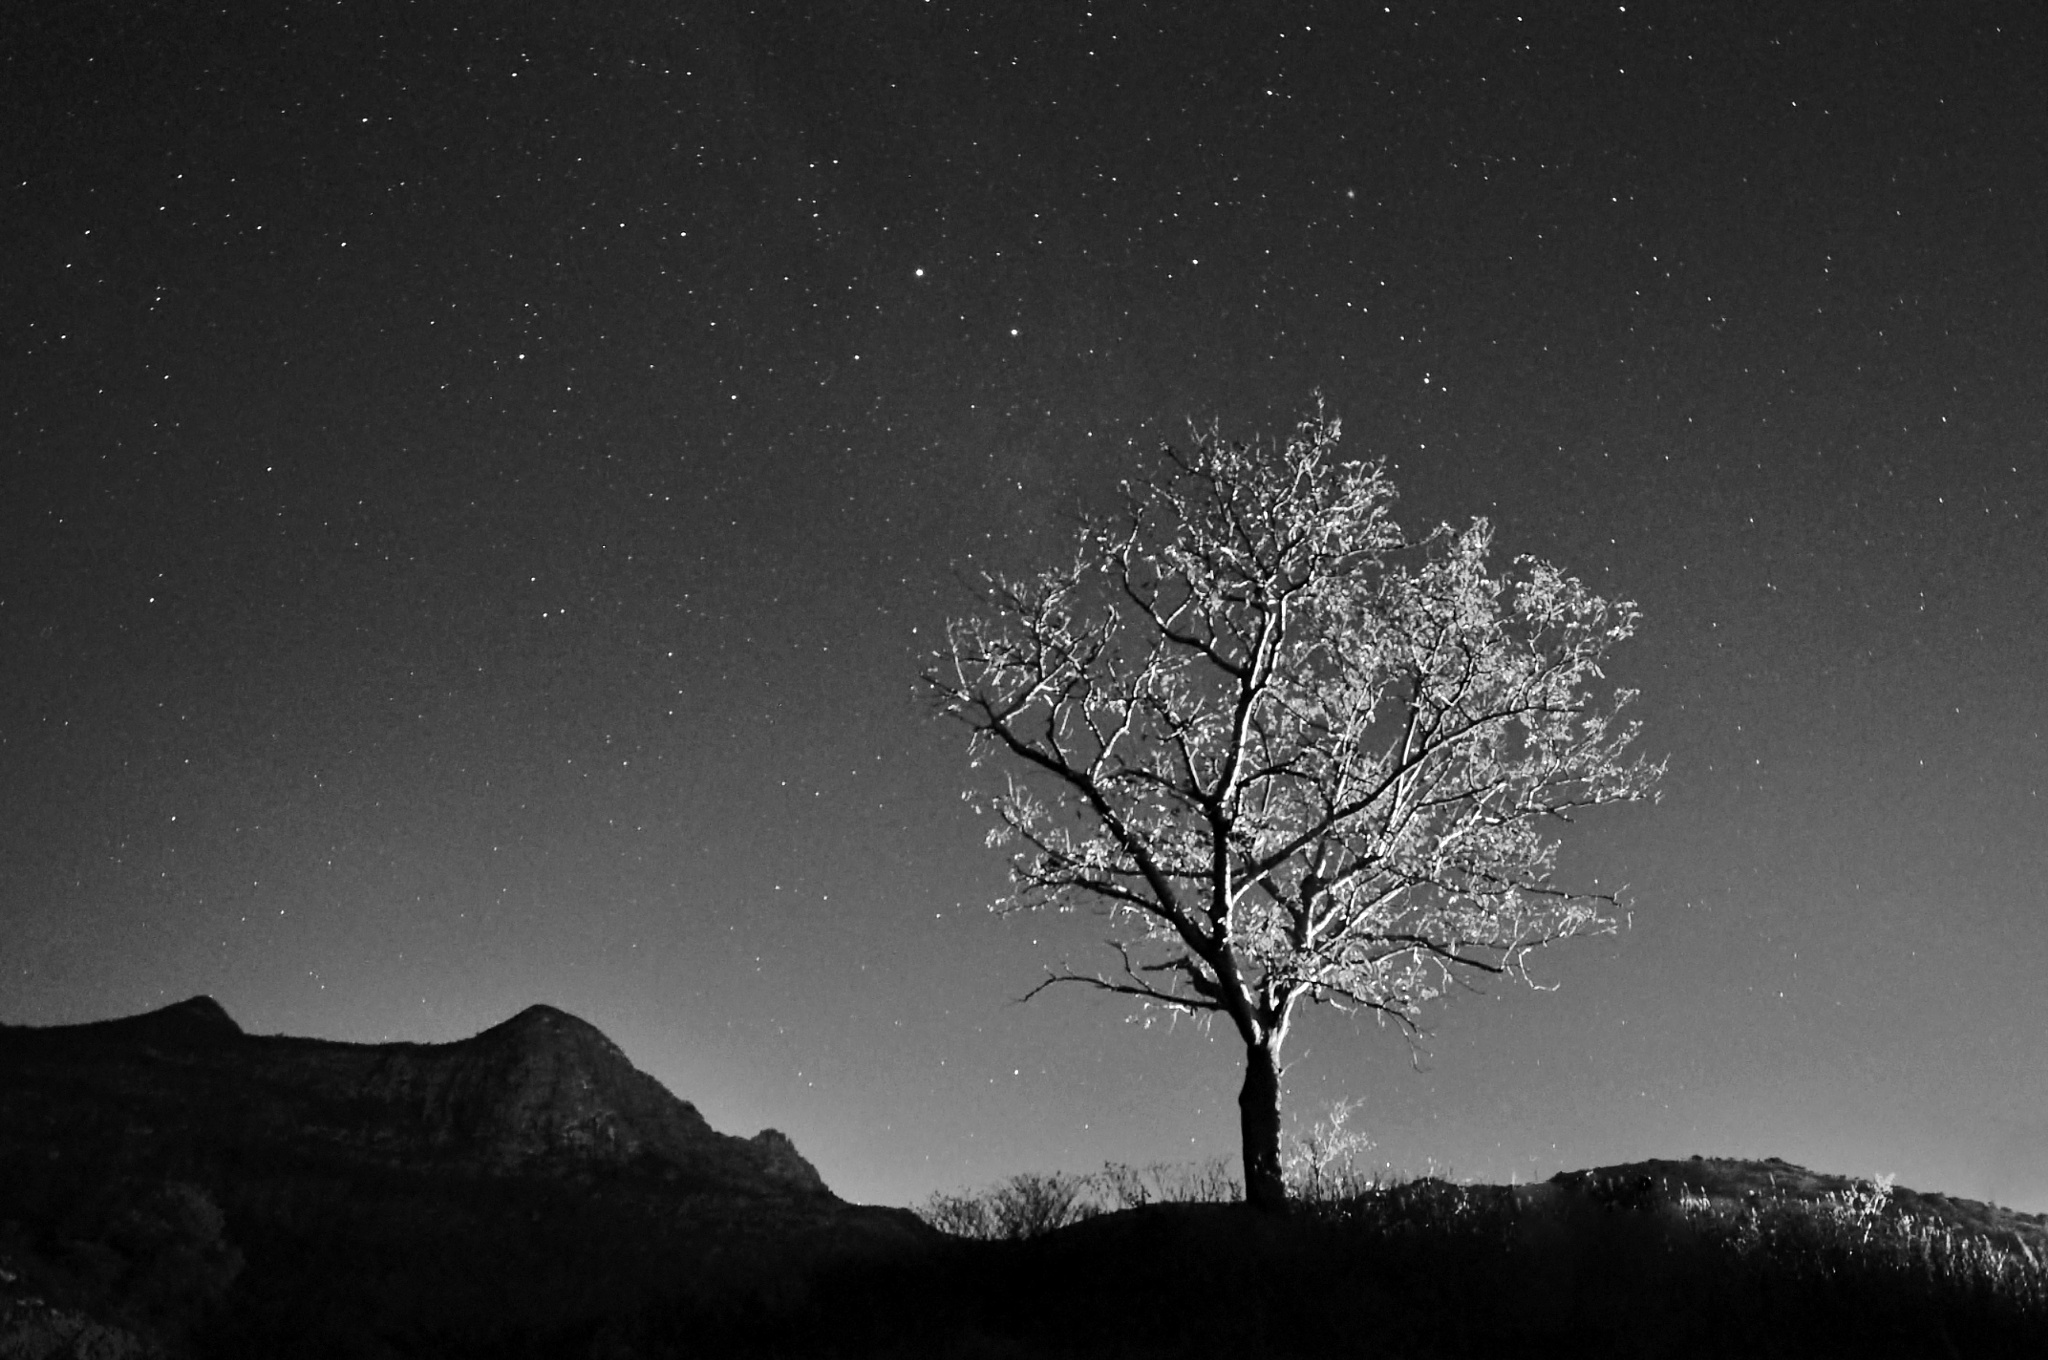 Dreaming Tree by Nakedmind